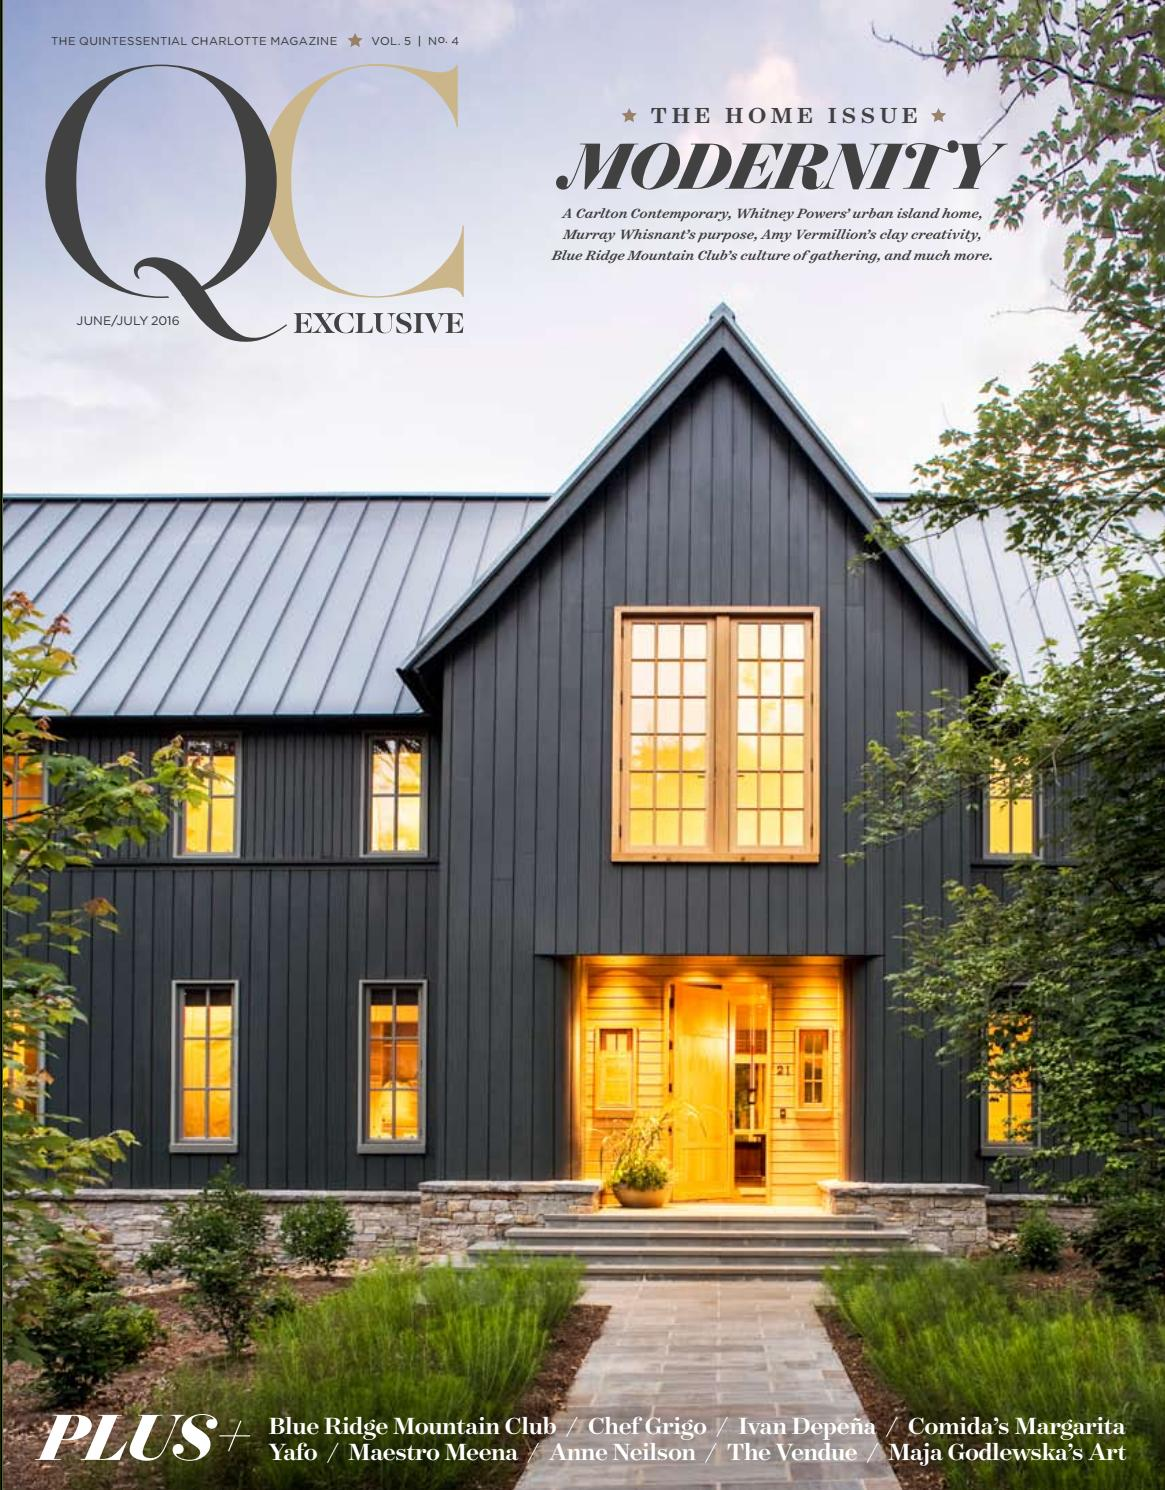 Qc Exclusive No 32 2016 Issue 4 The Home Issue By Qc Exclusive Magazine Issuu